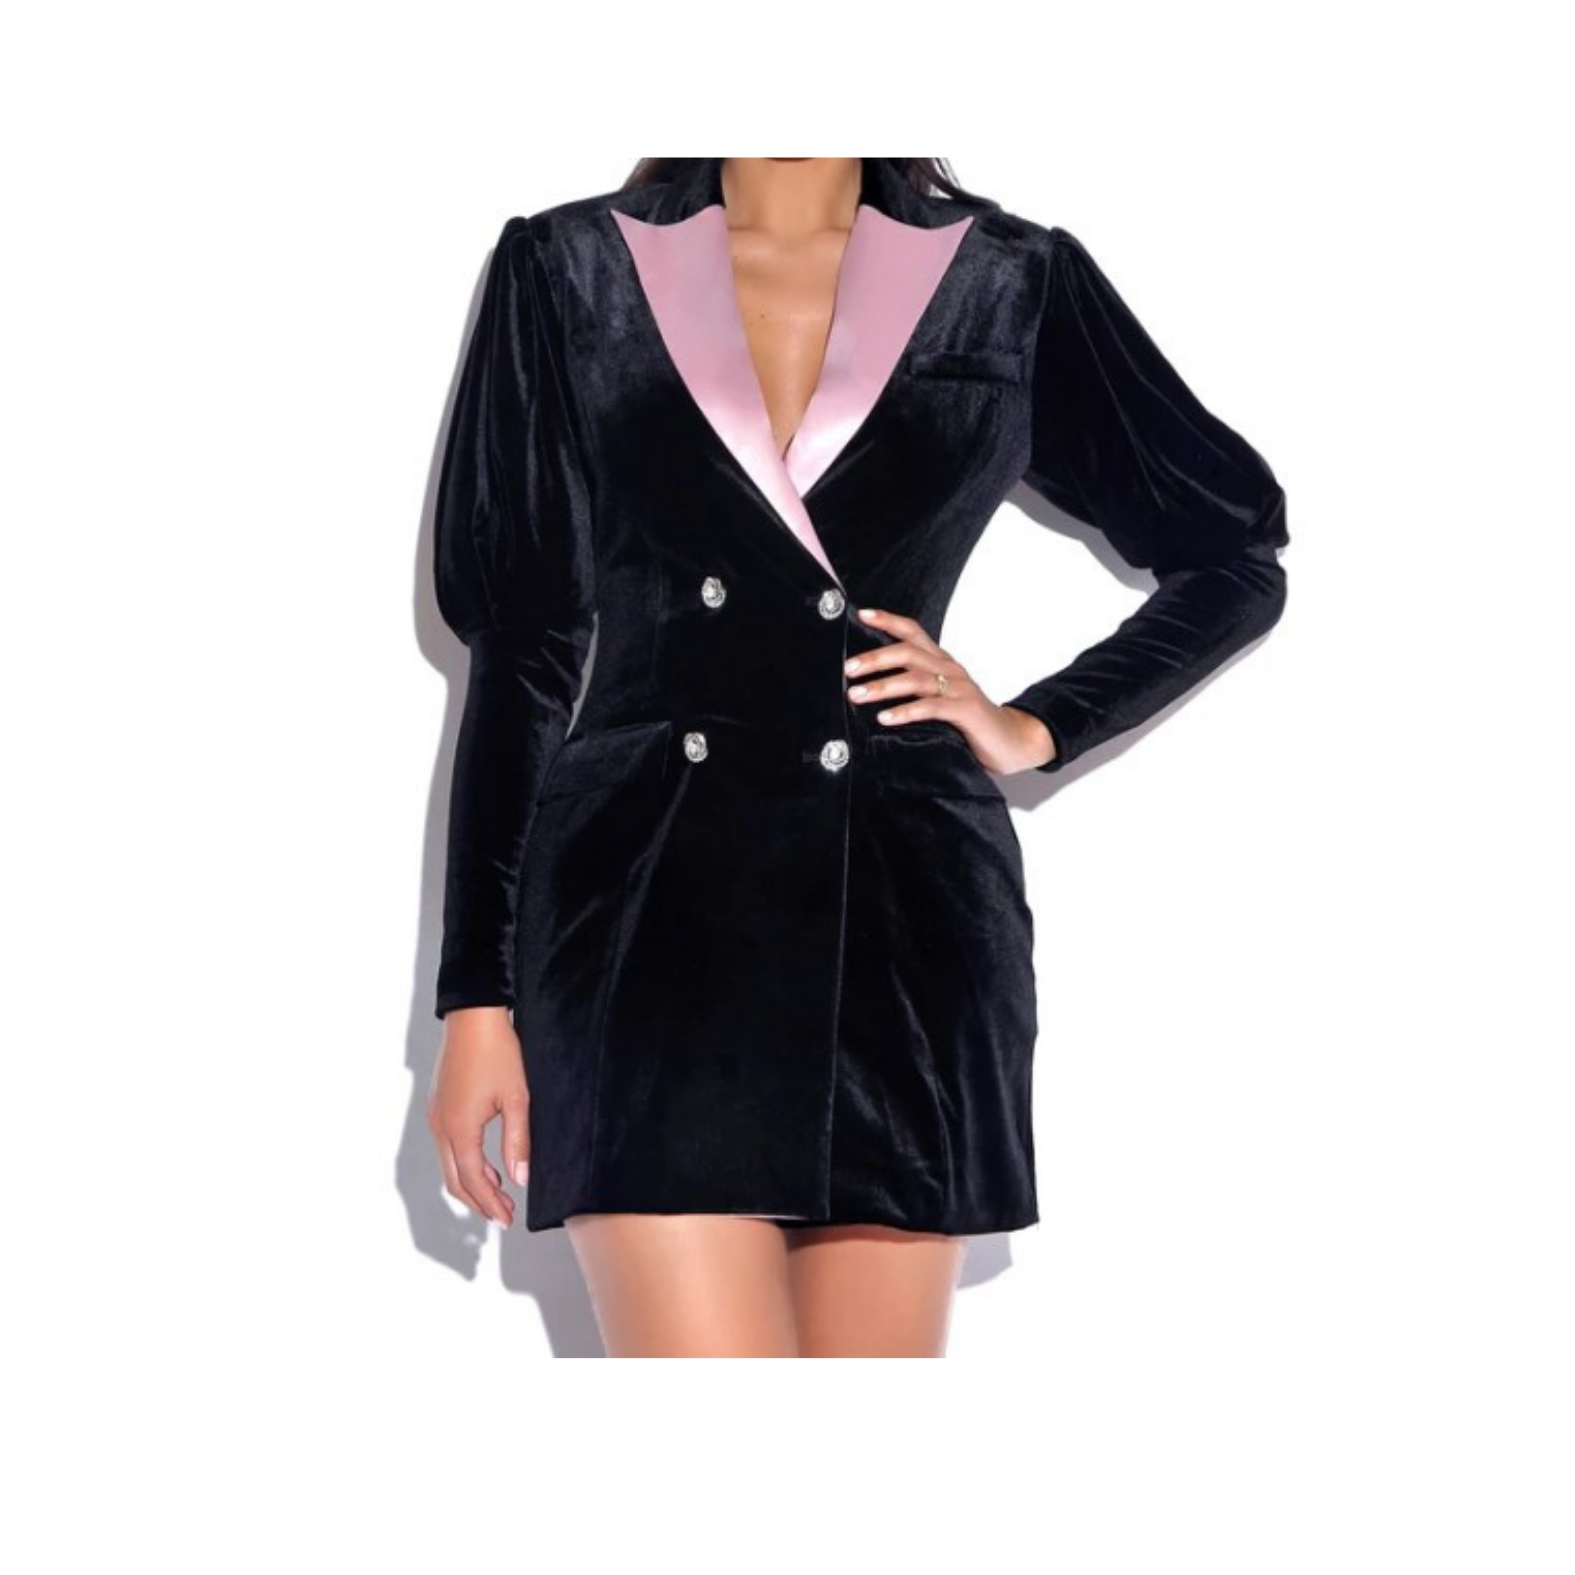 ''Lolita'' – Fashion Velvet Blazer Dress/Top